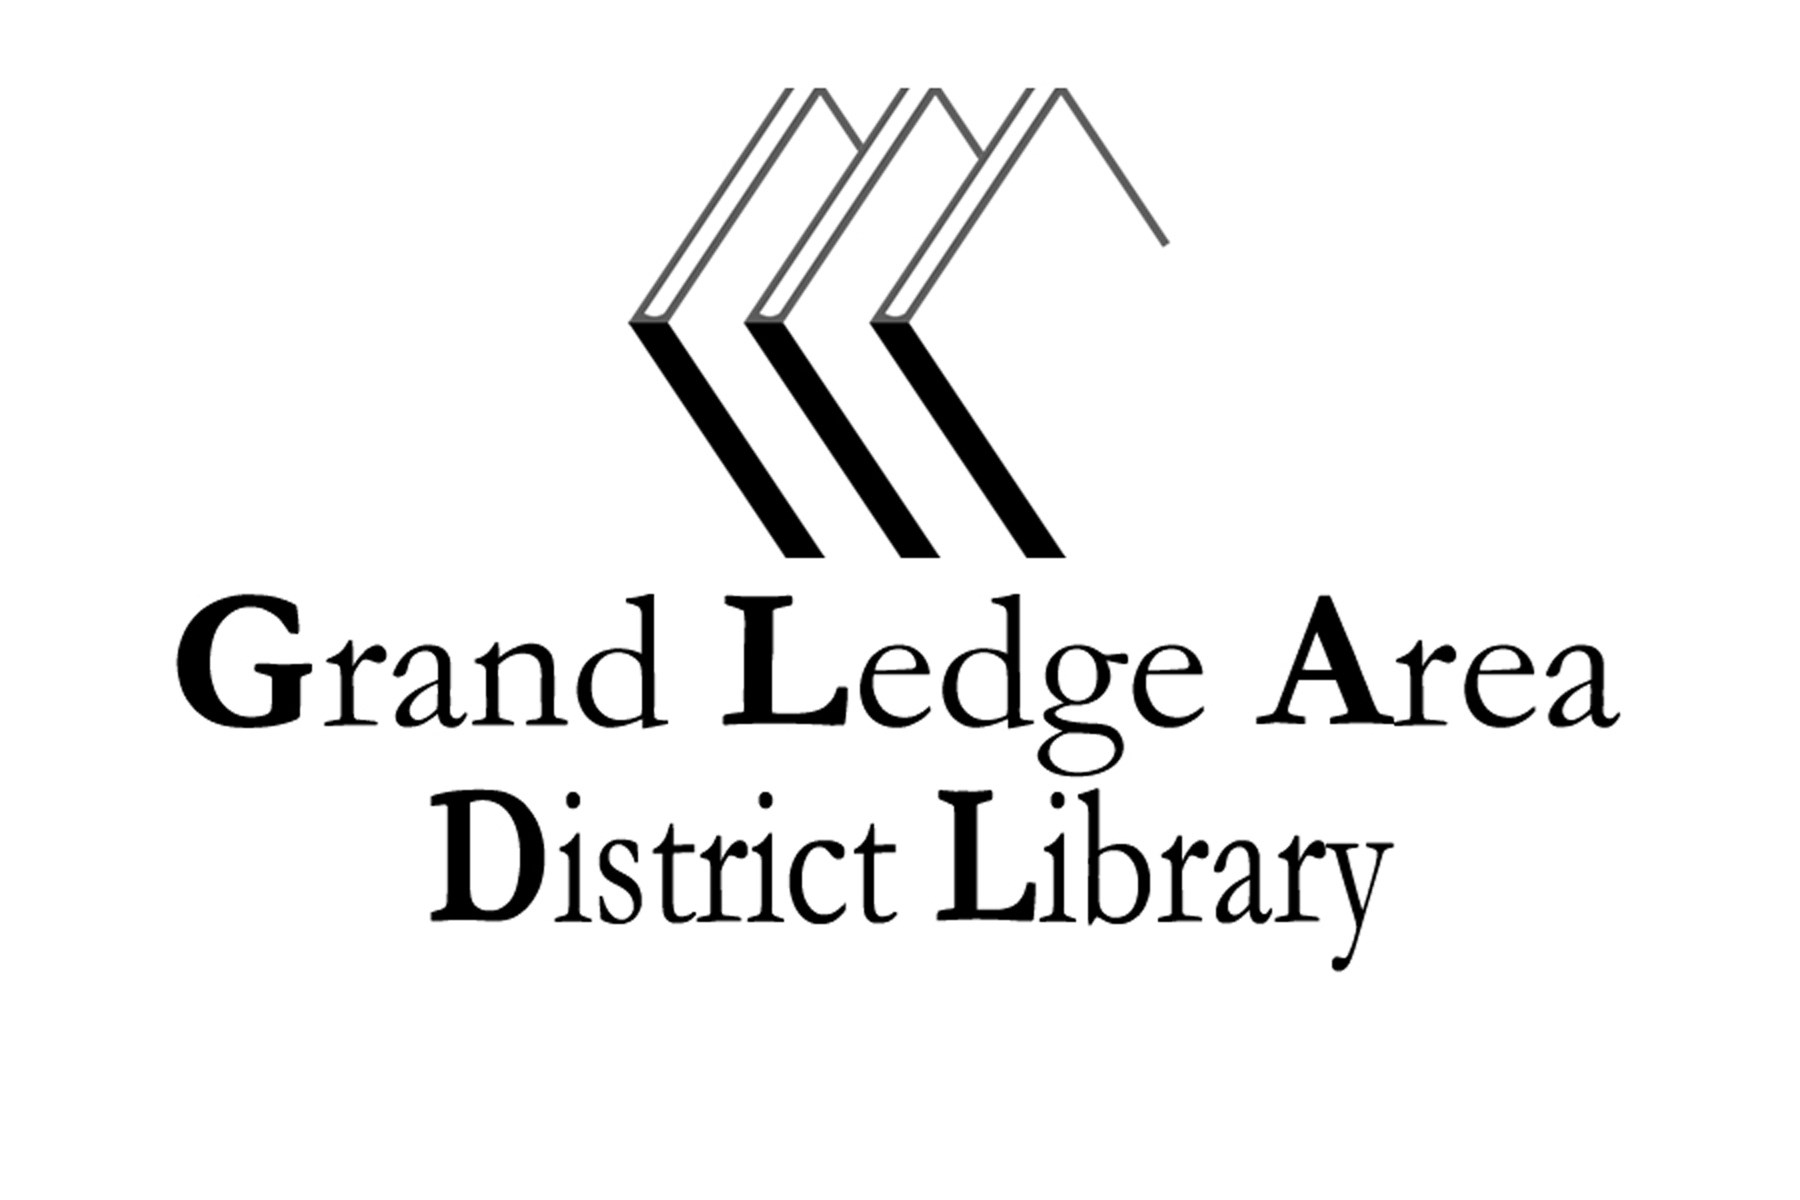 Grand Ledge Area District Library